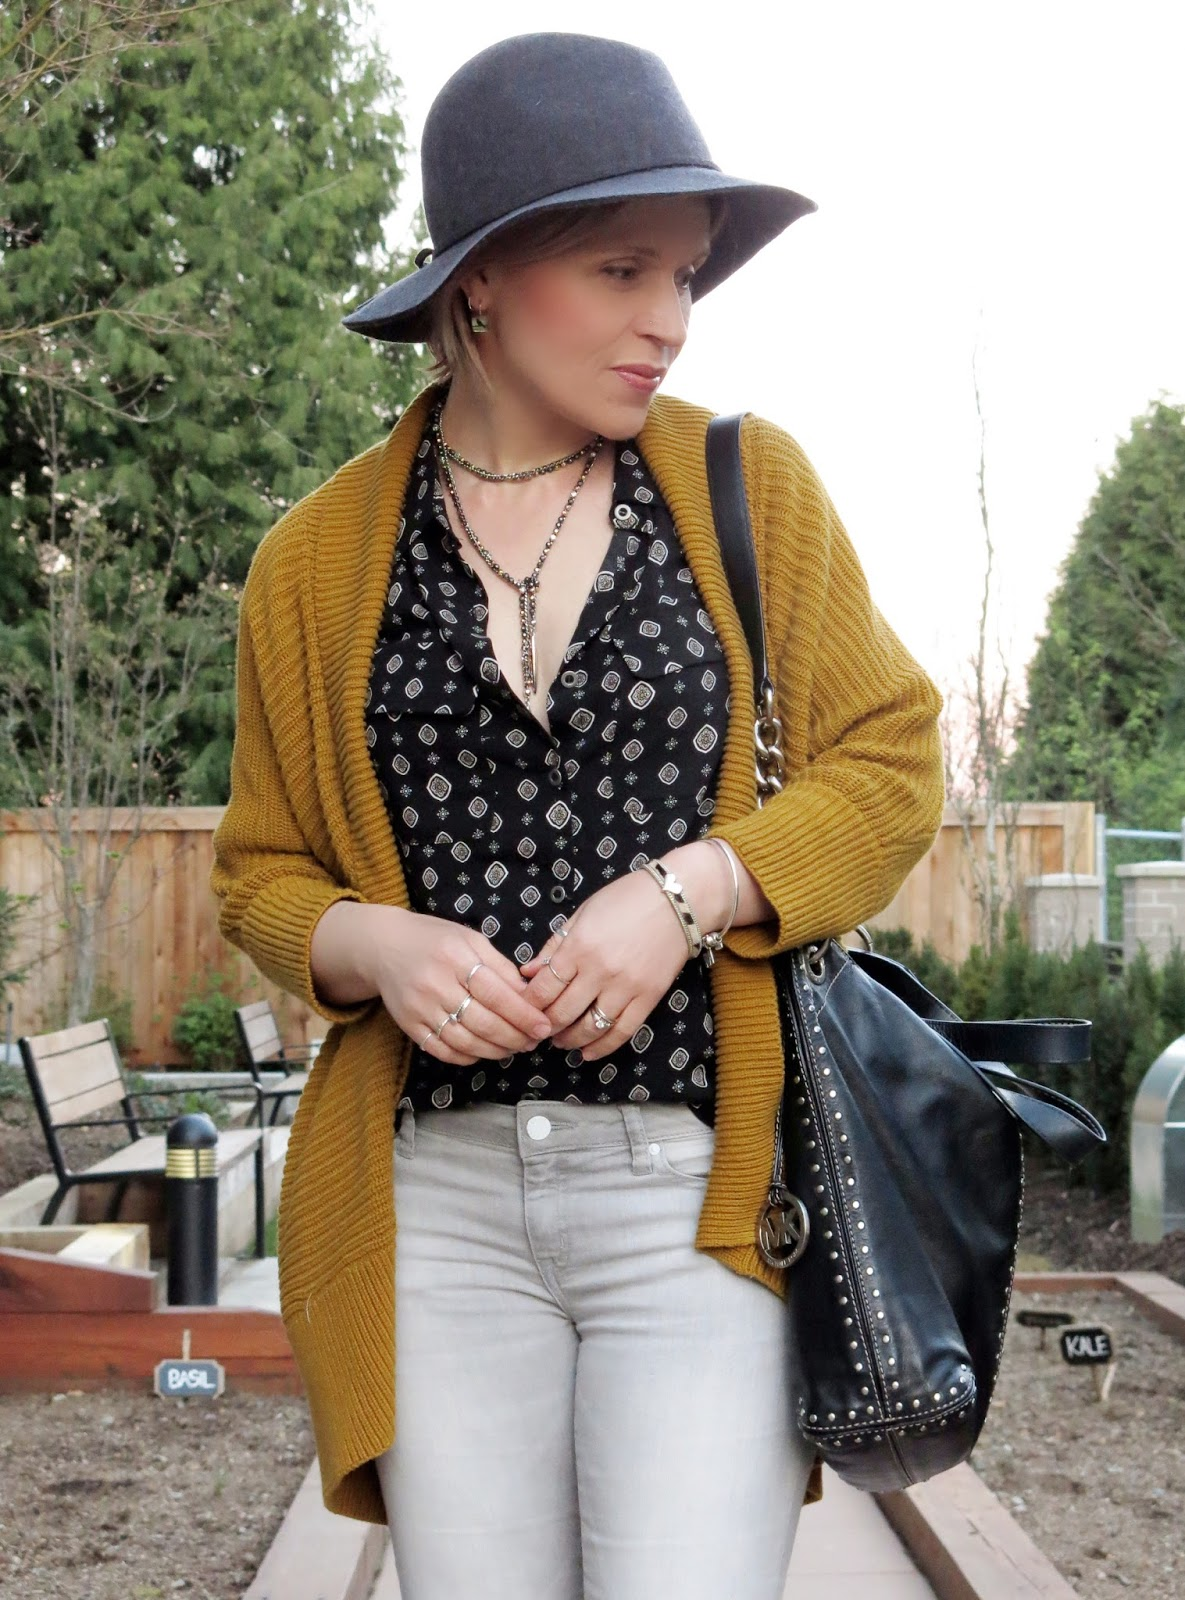 black patterned shirt, grey skinny jeans, drapey mustard cardigan, floppy hat, MK bag